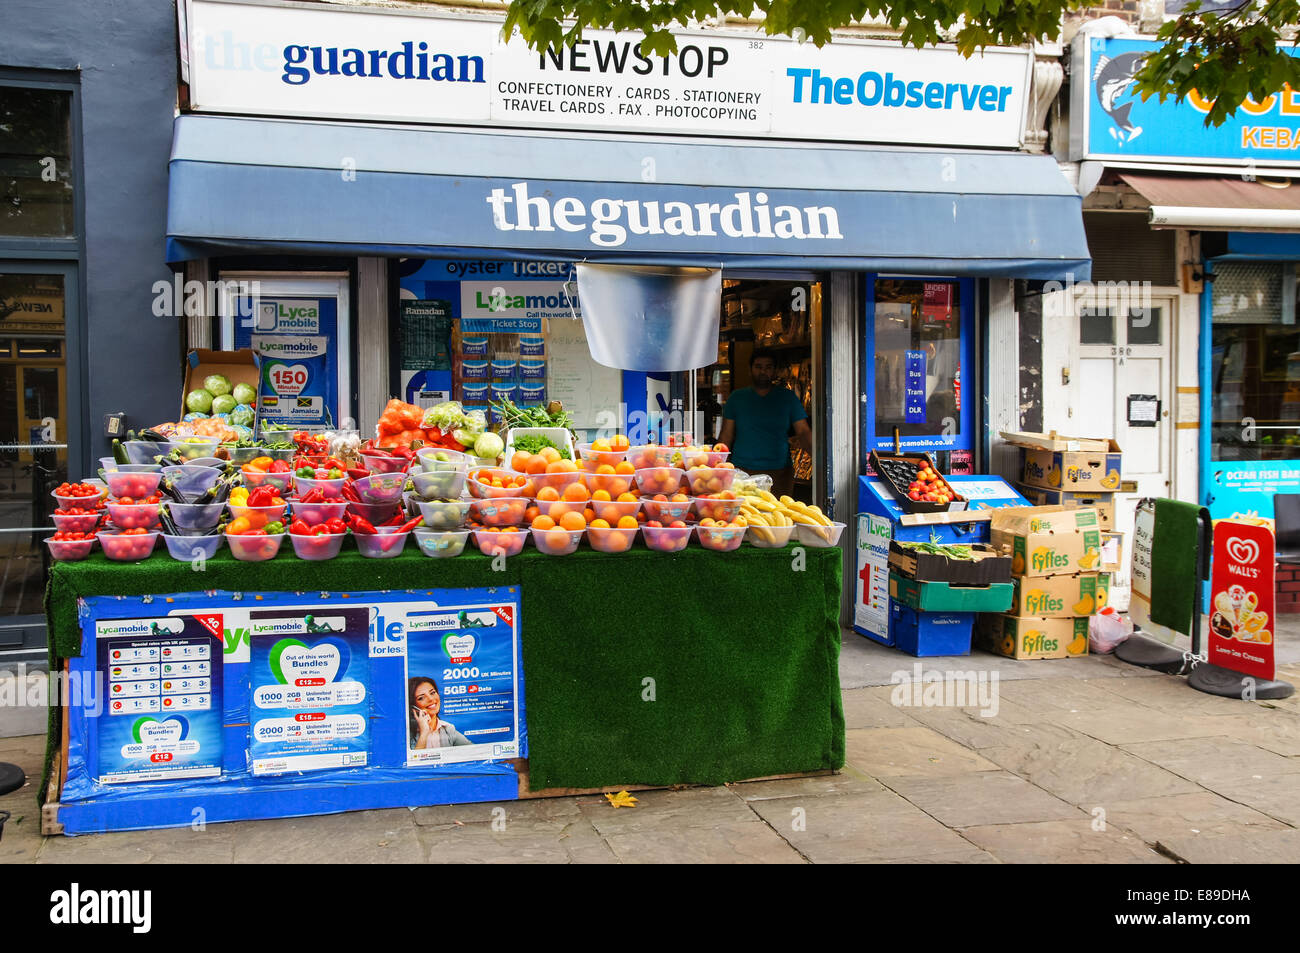 A grocery store on Caledonian Road, London England United Kingdom UK - Stock Image